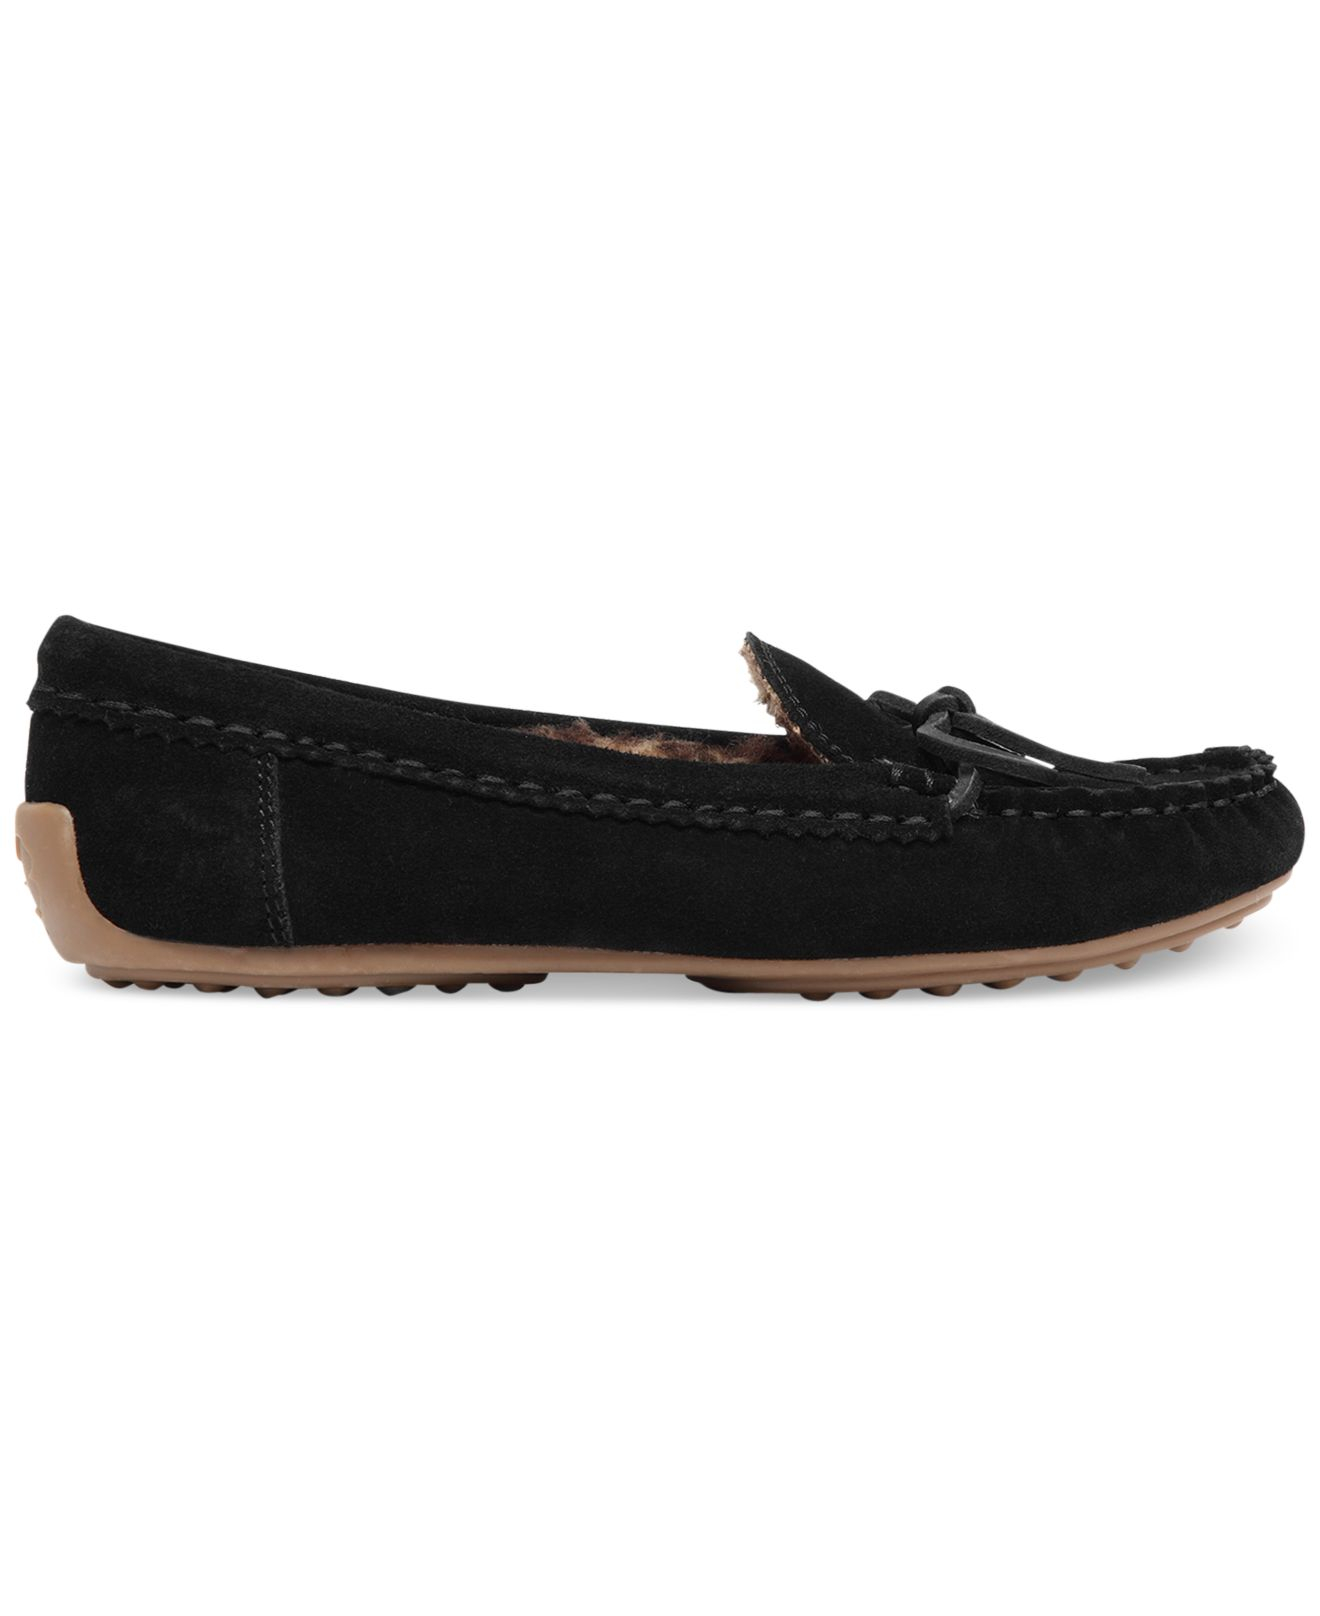 40557081696 Lyst - Lucky Brand Women S Aligabe Faux-Fur Moccasins in Black for Men